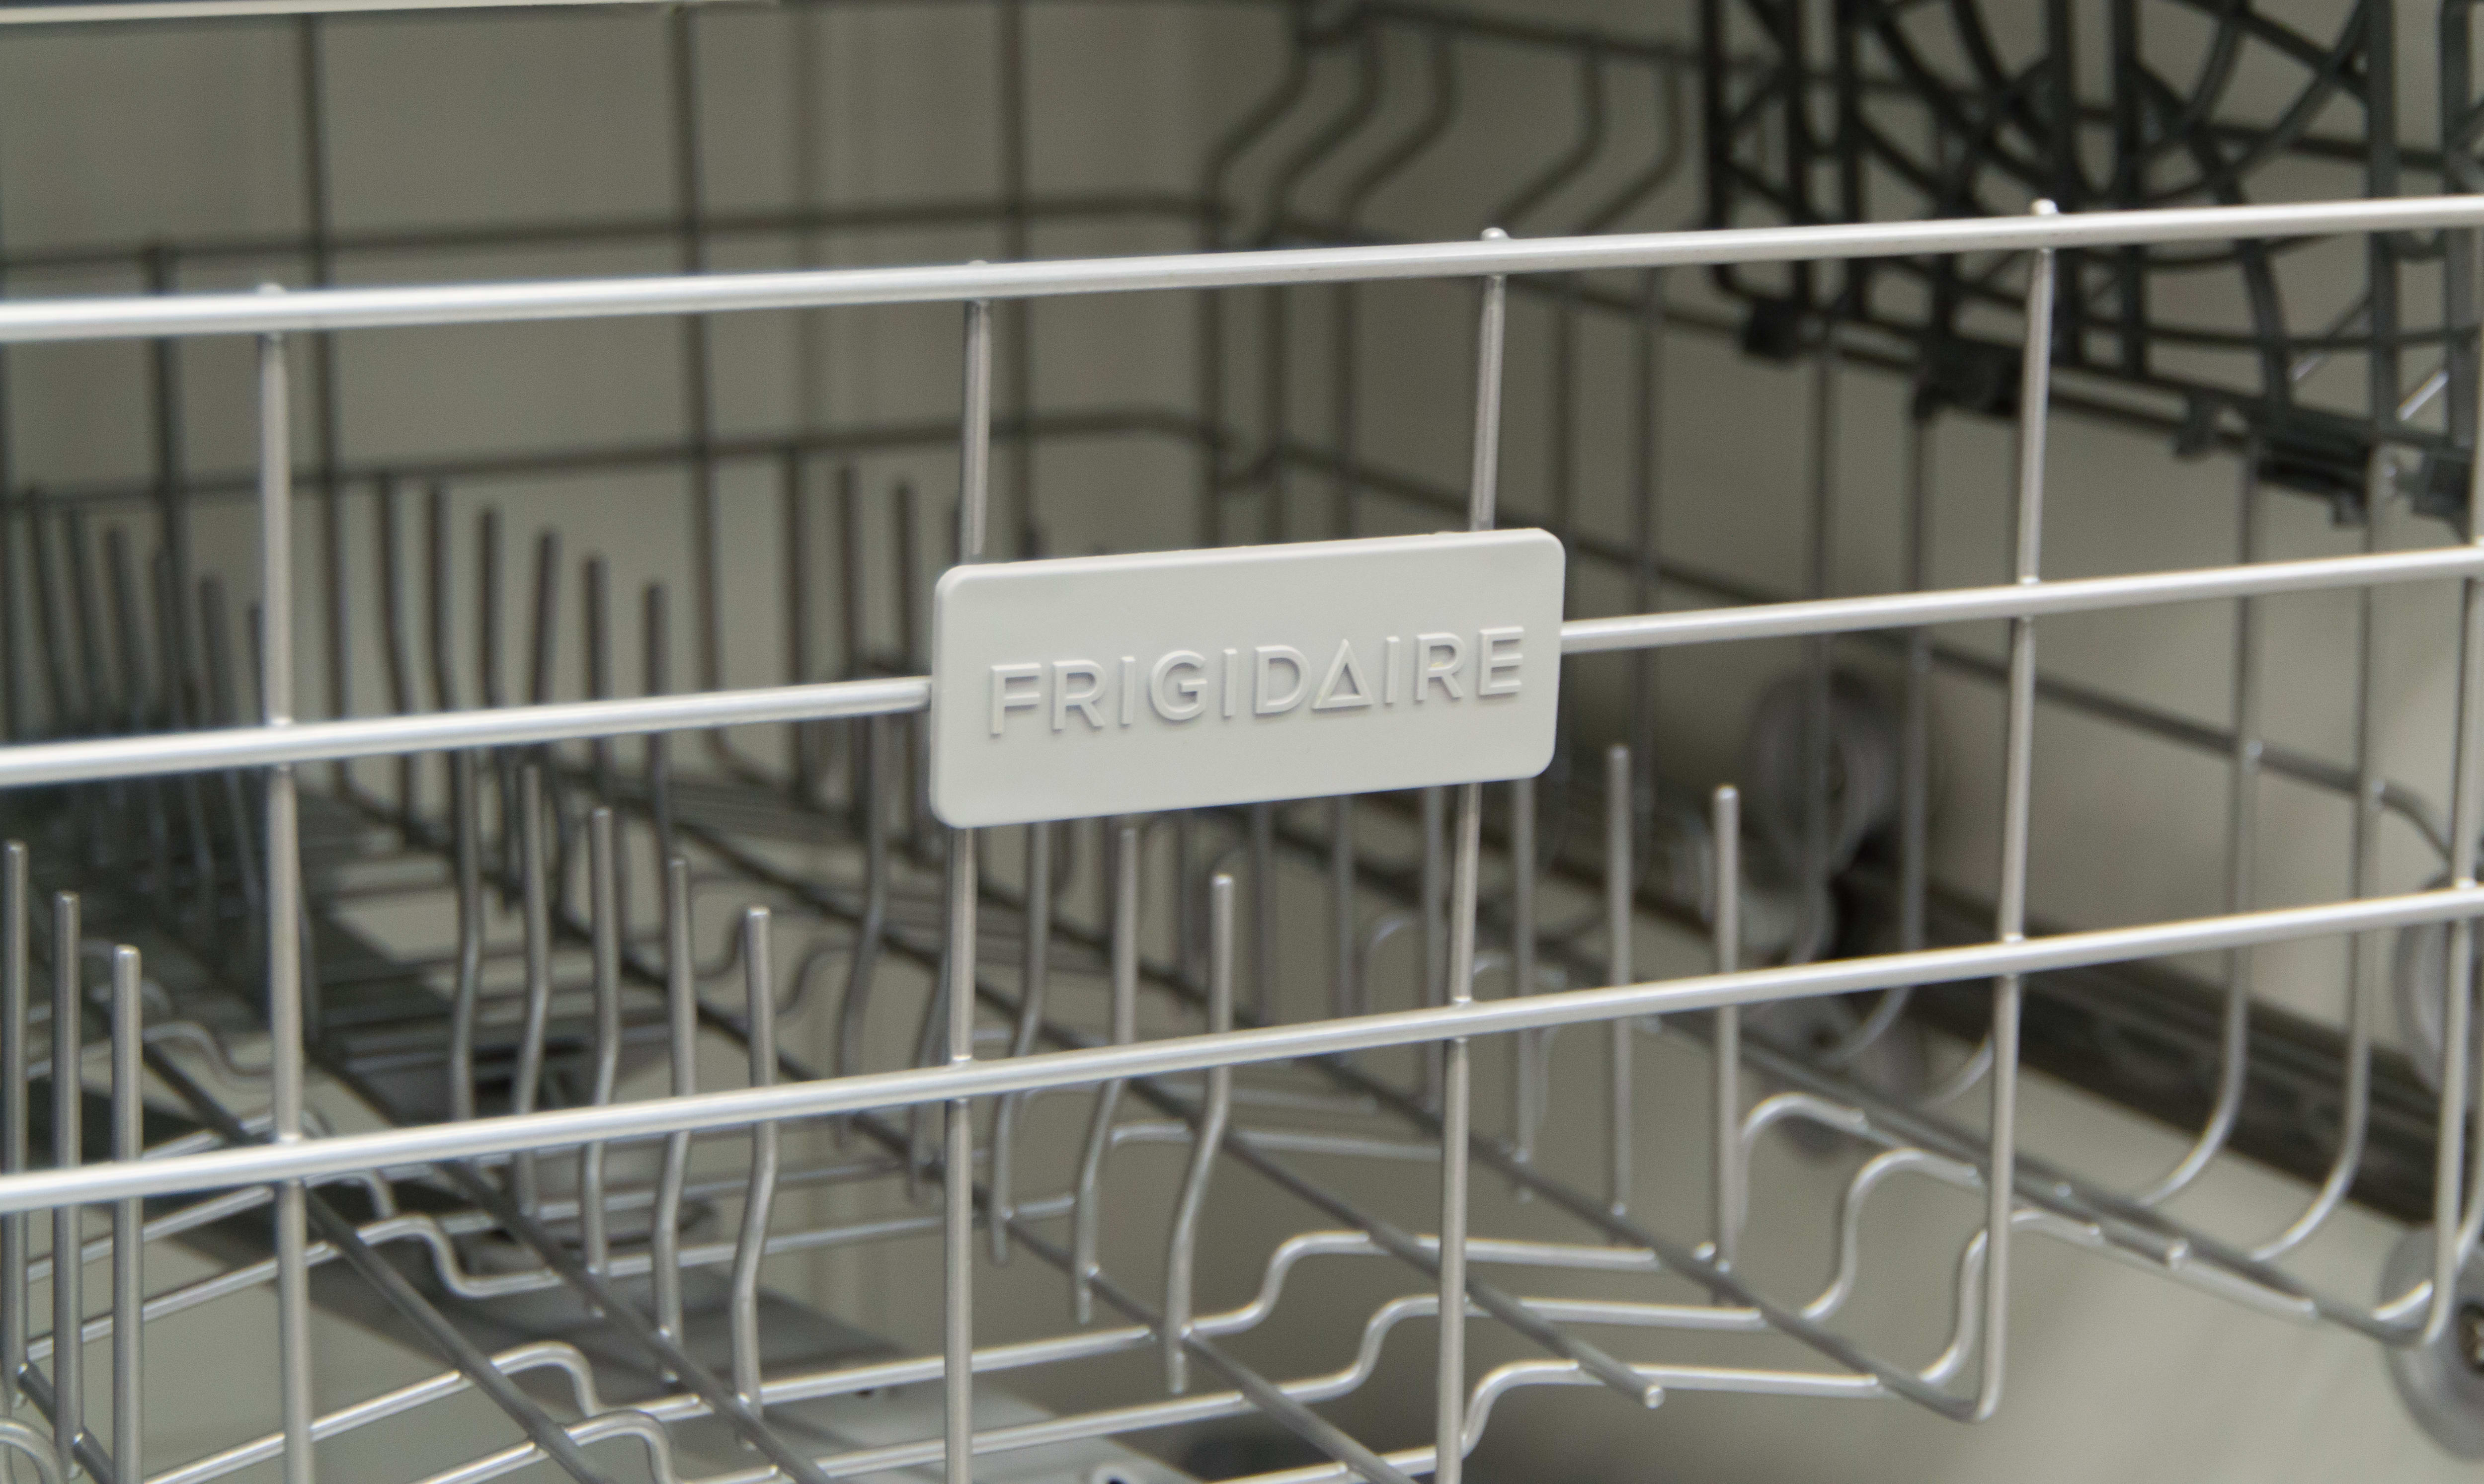 Here's what the Frigidaire logo is supposed to look like.